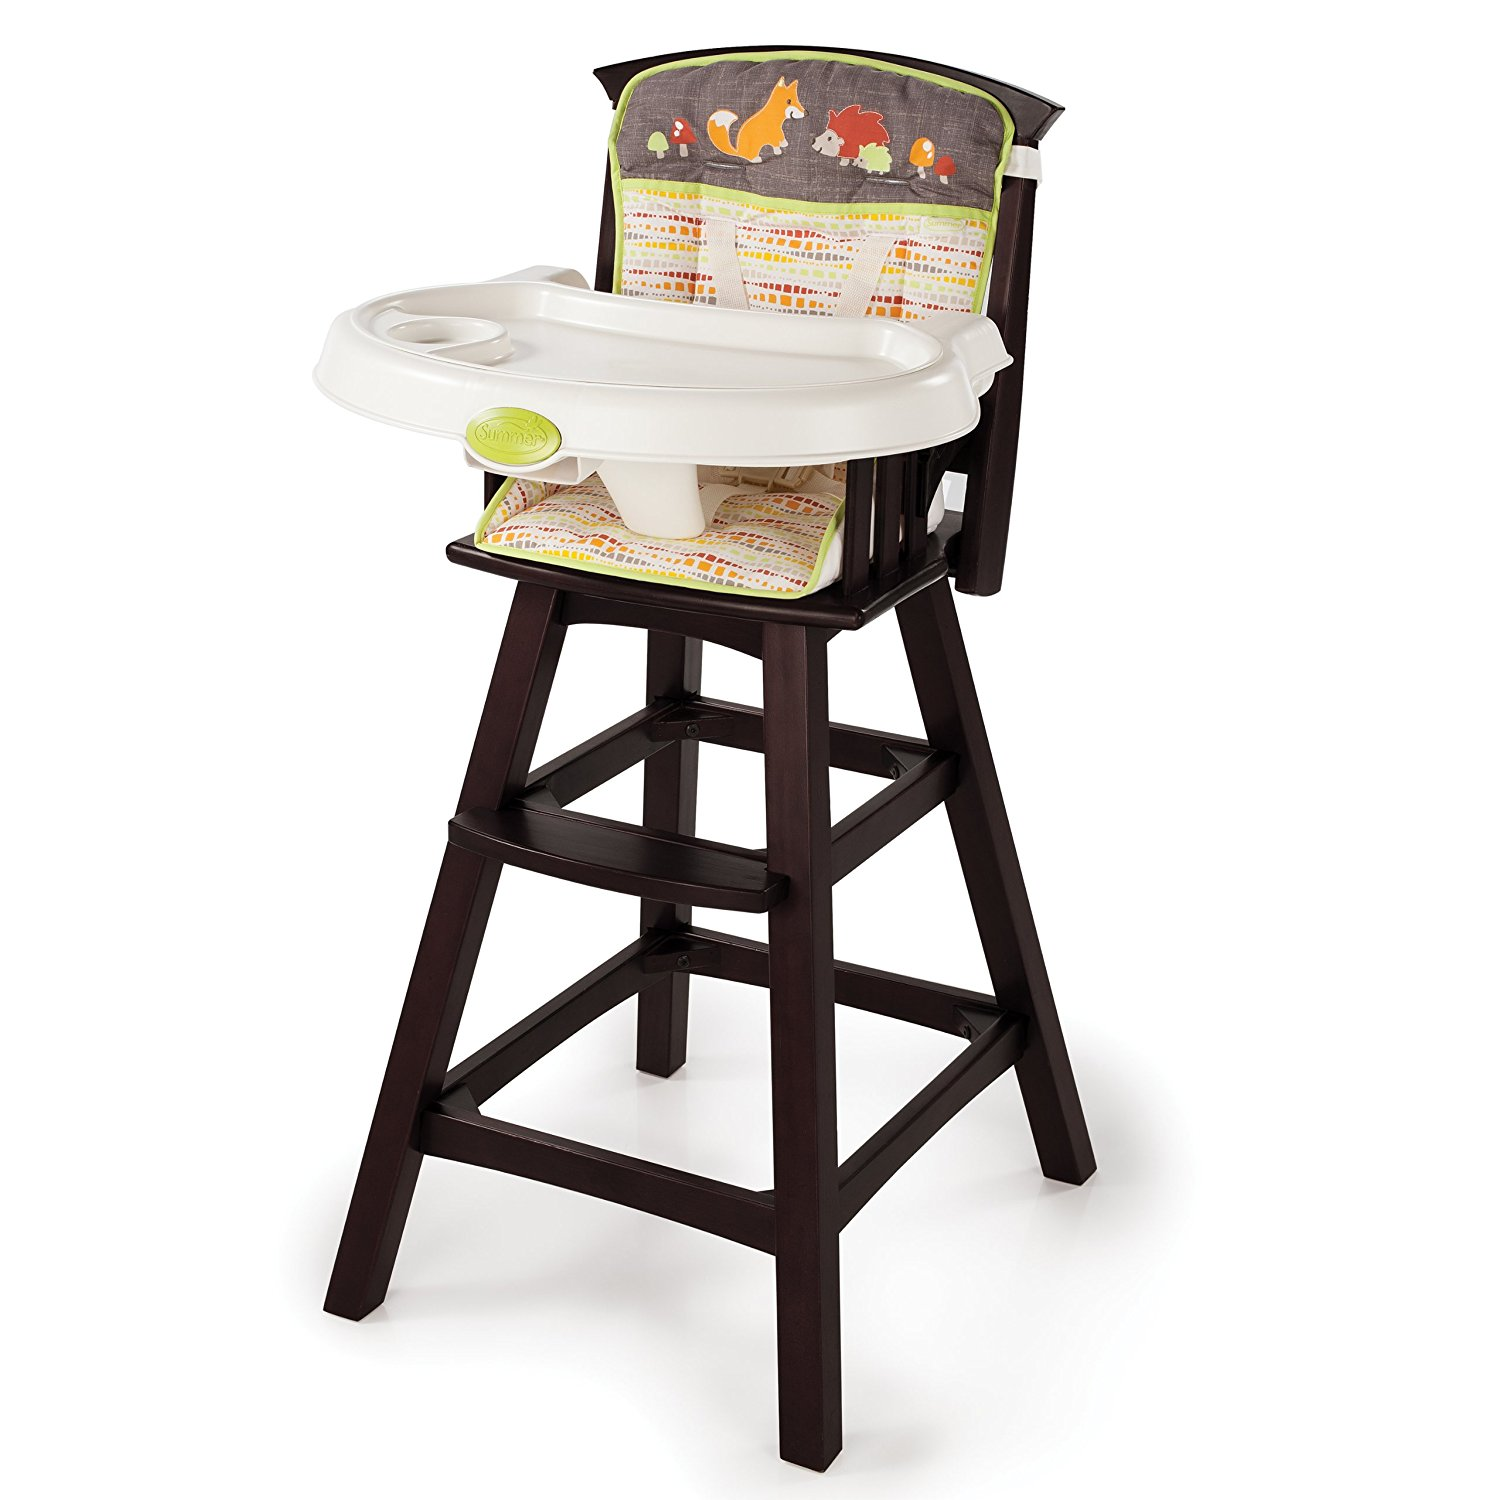 A home with a high chair is happy